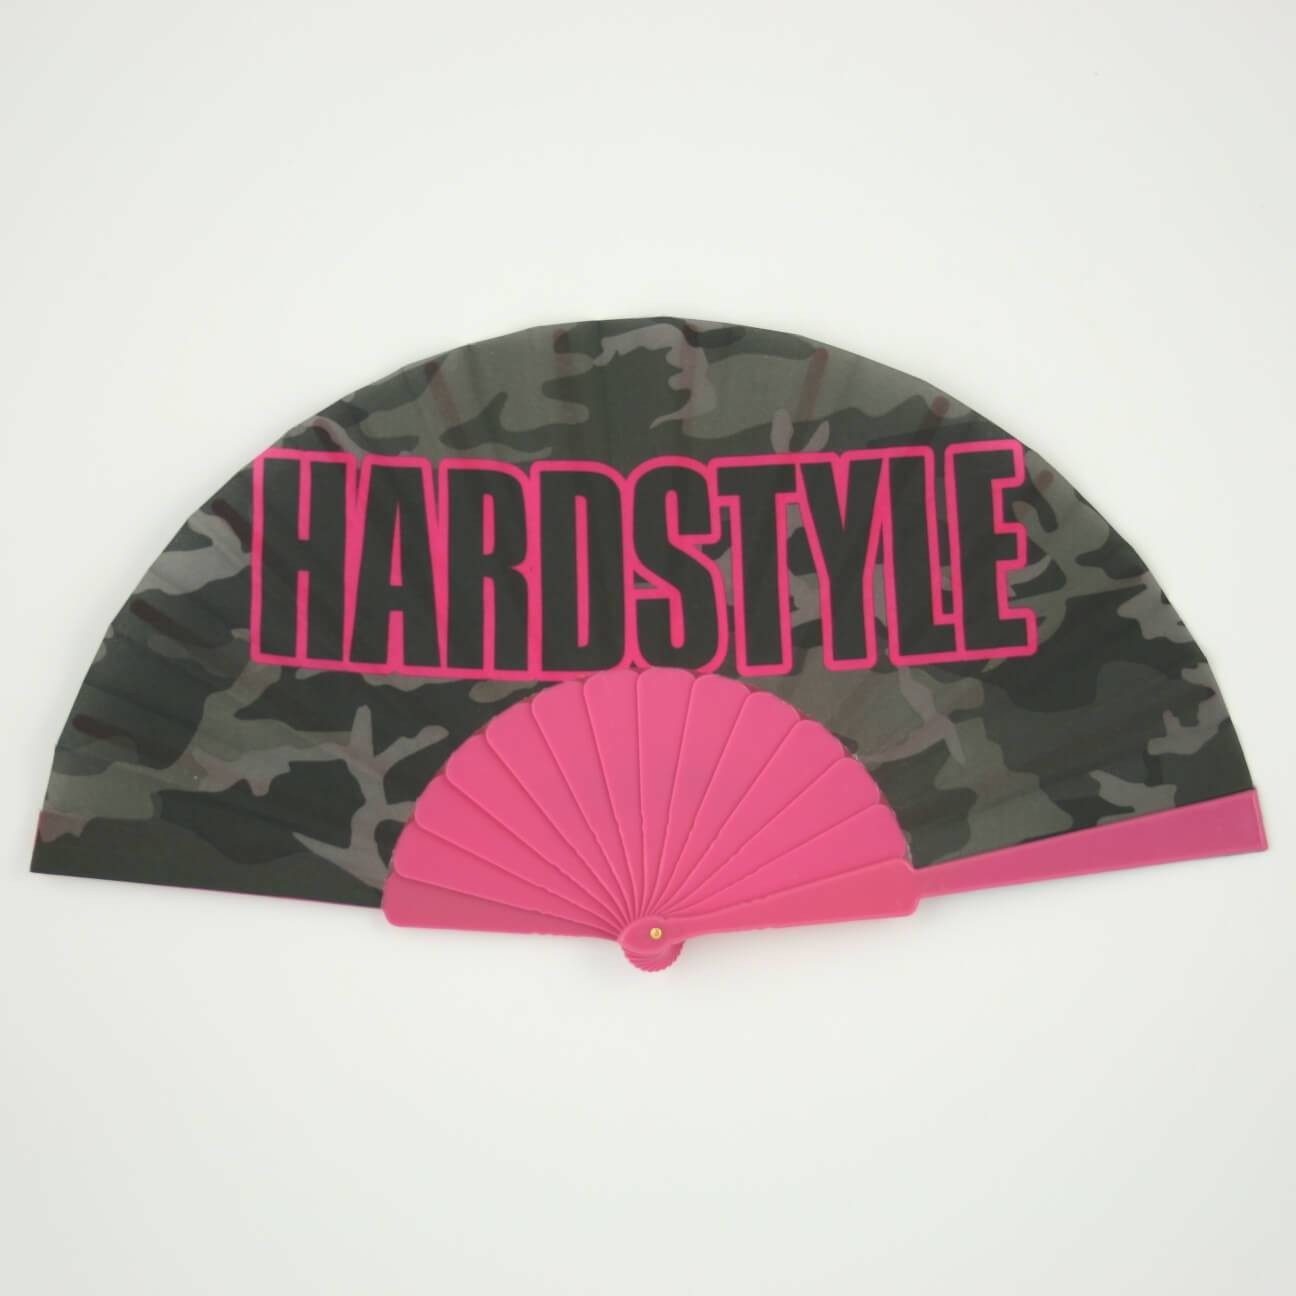 Hardstyle hand fan camo pink